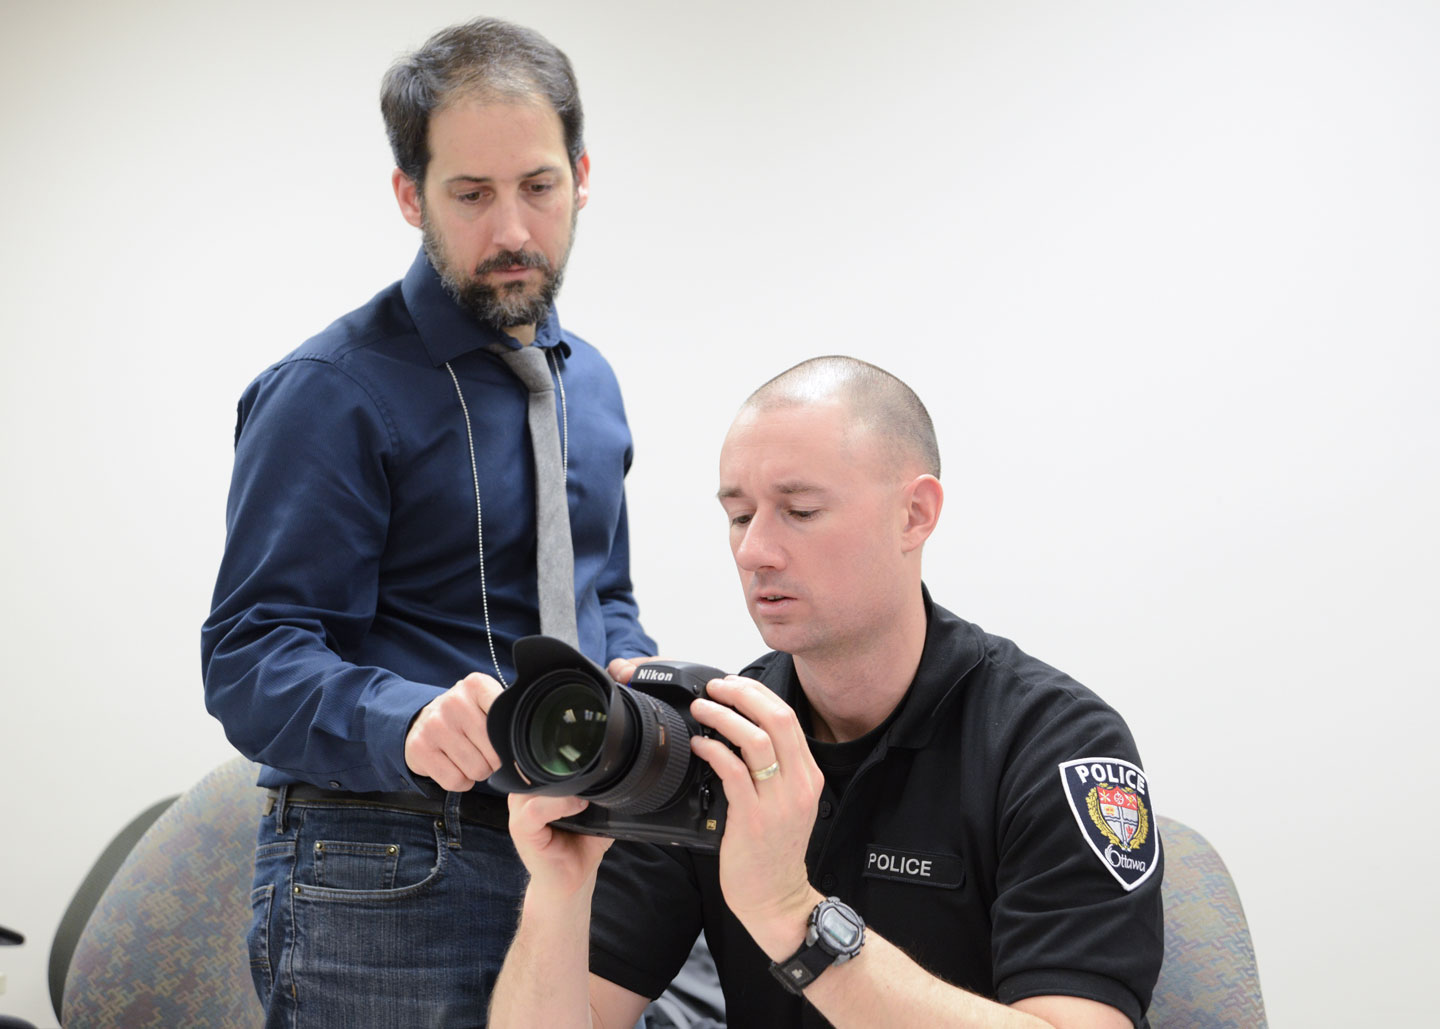 Teaching an officer how to take photographic evidence